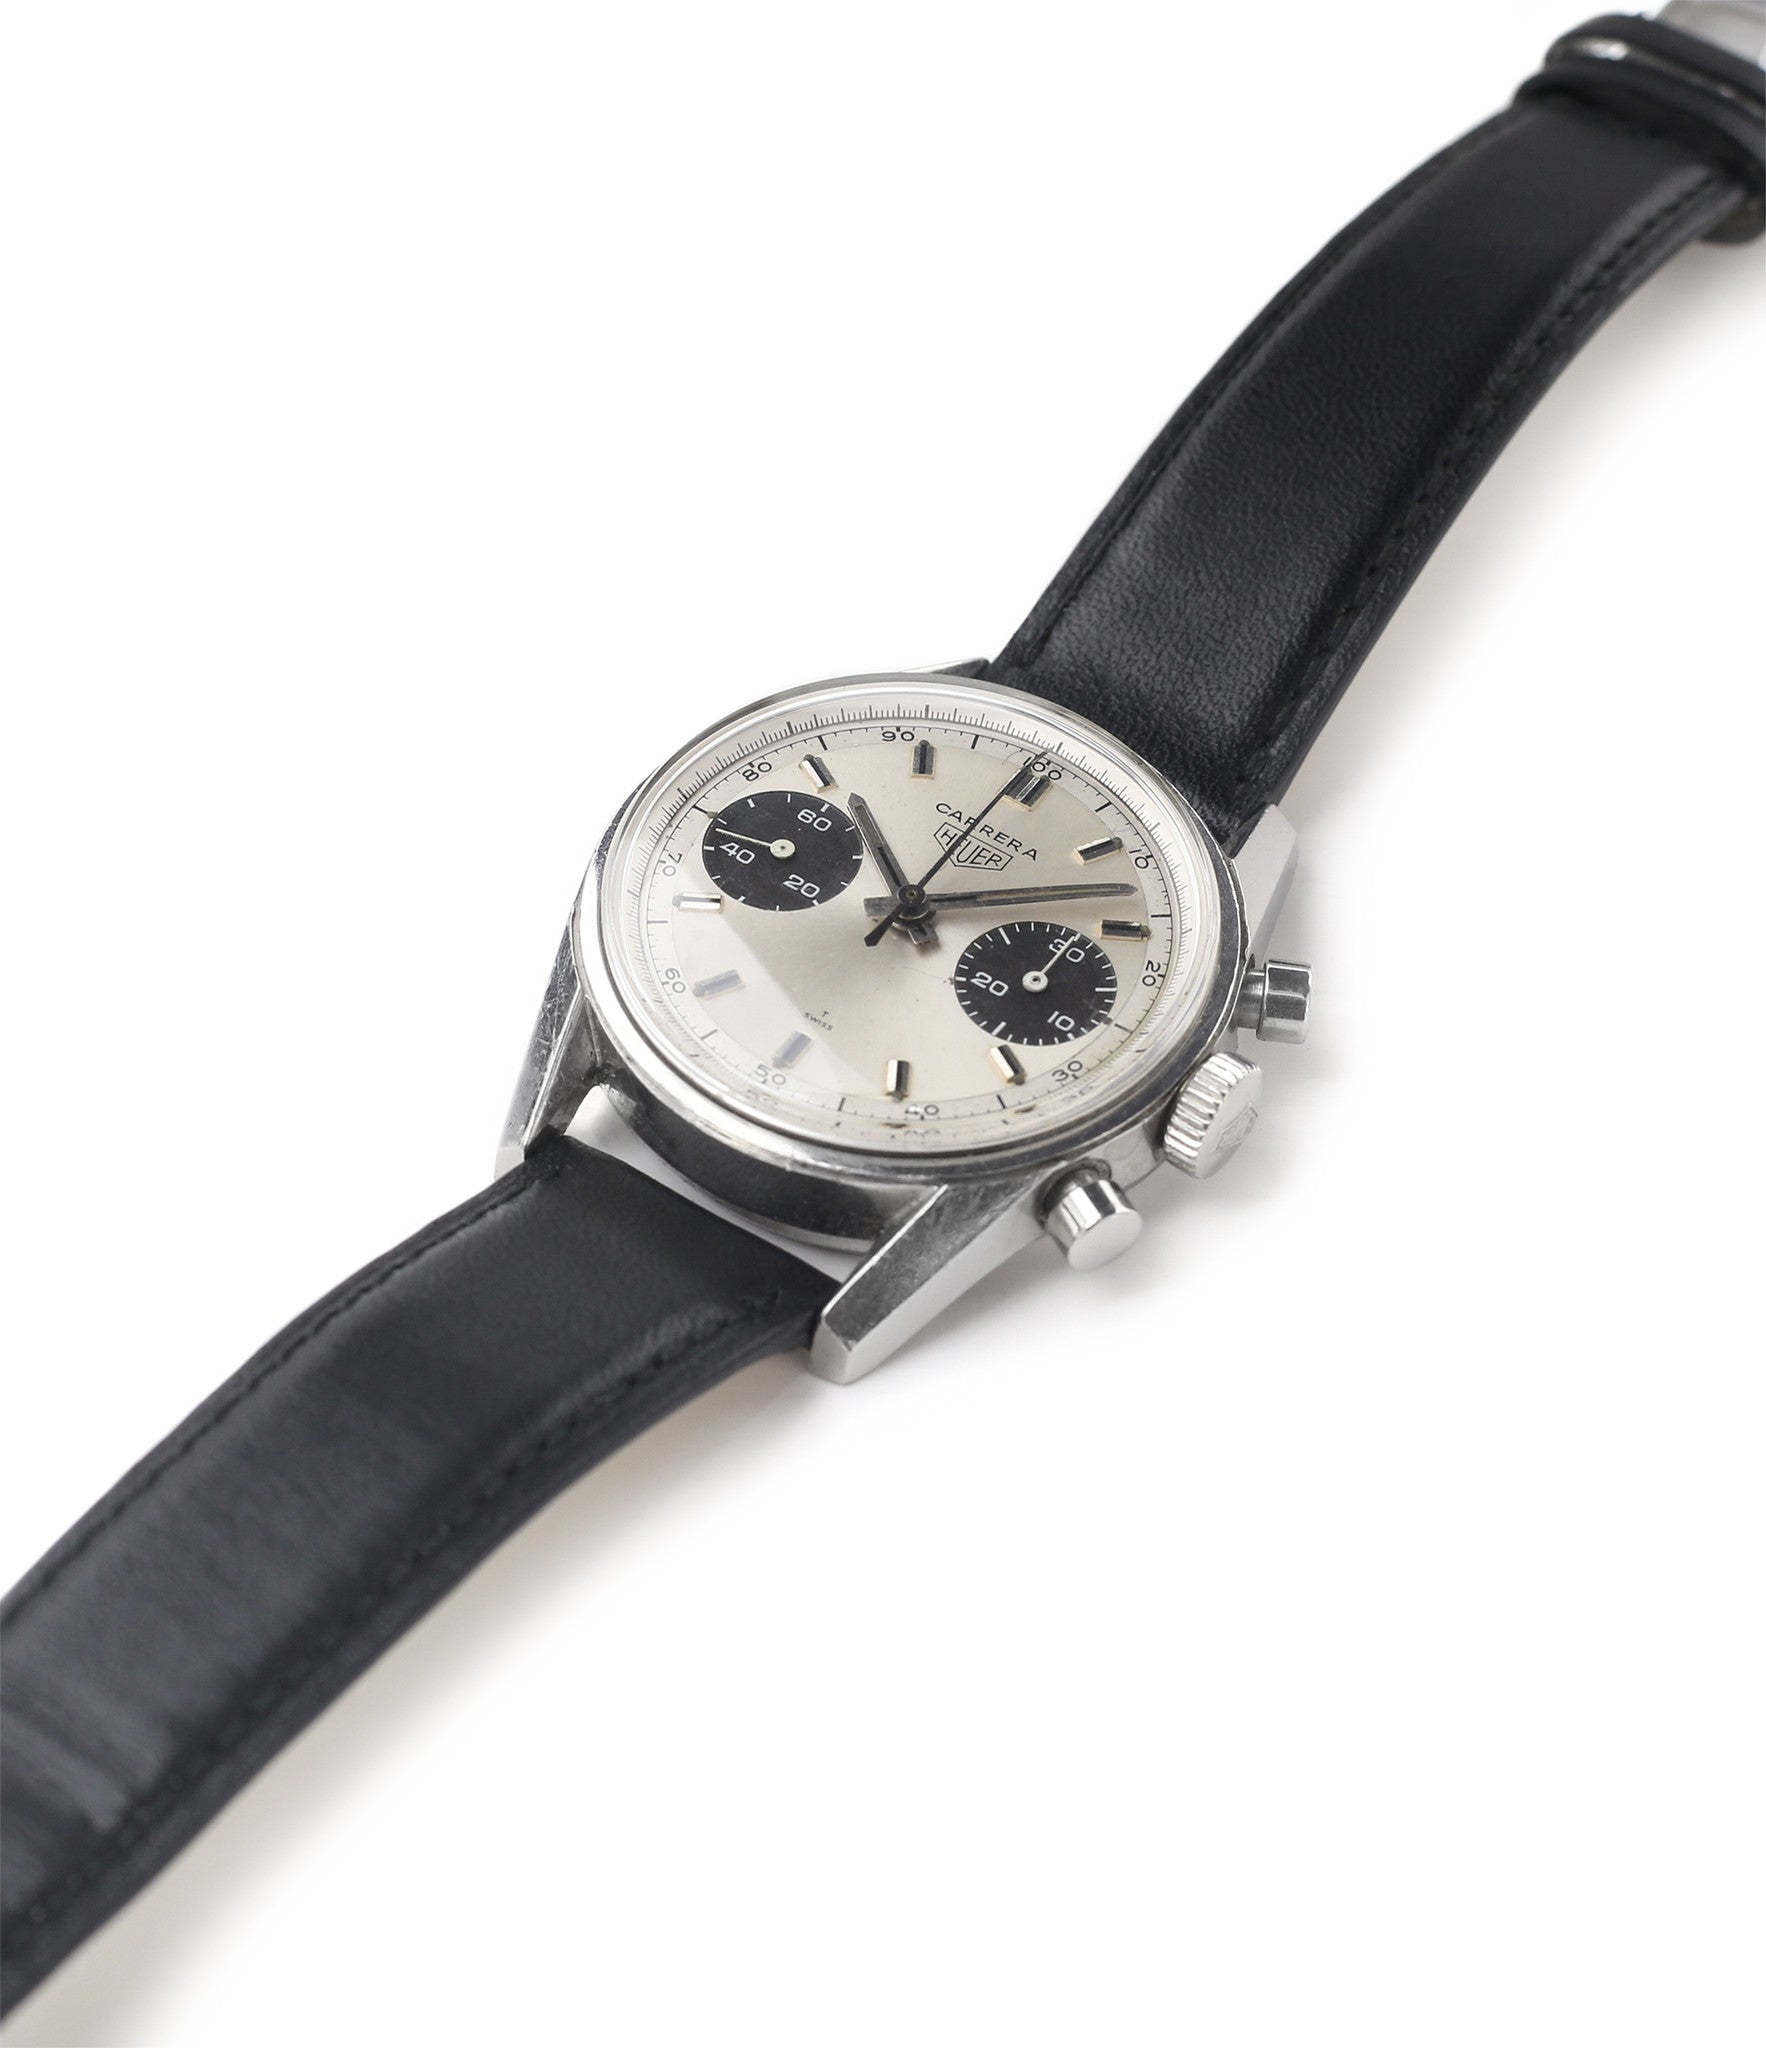 for sale Heuer Carrera 7753SND vintage sports watch panda dial online at A Collected Man